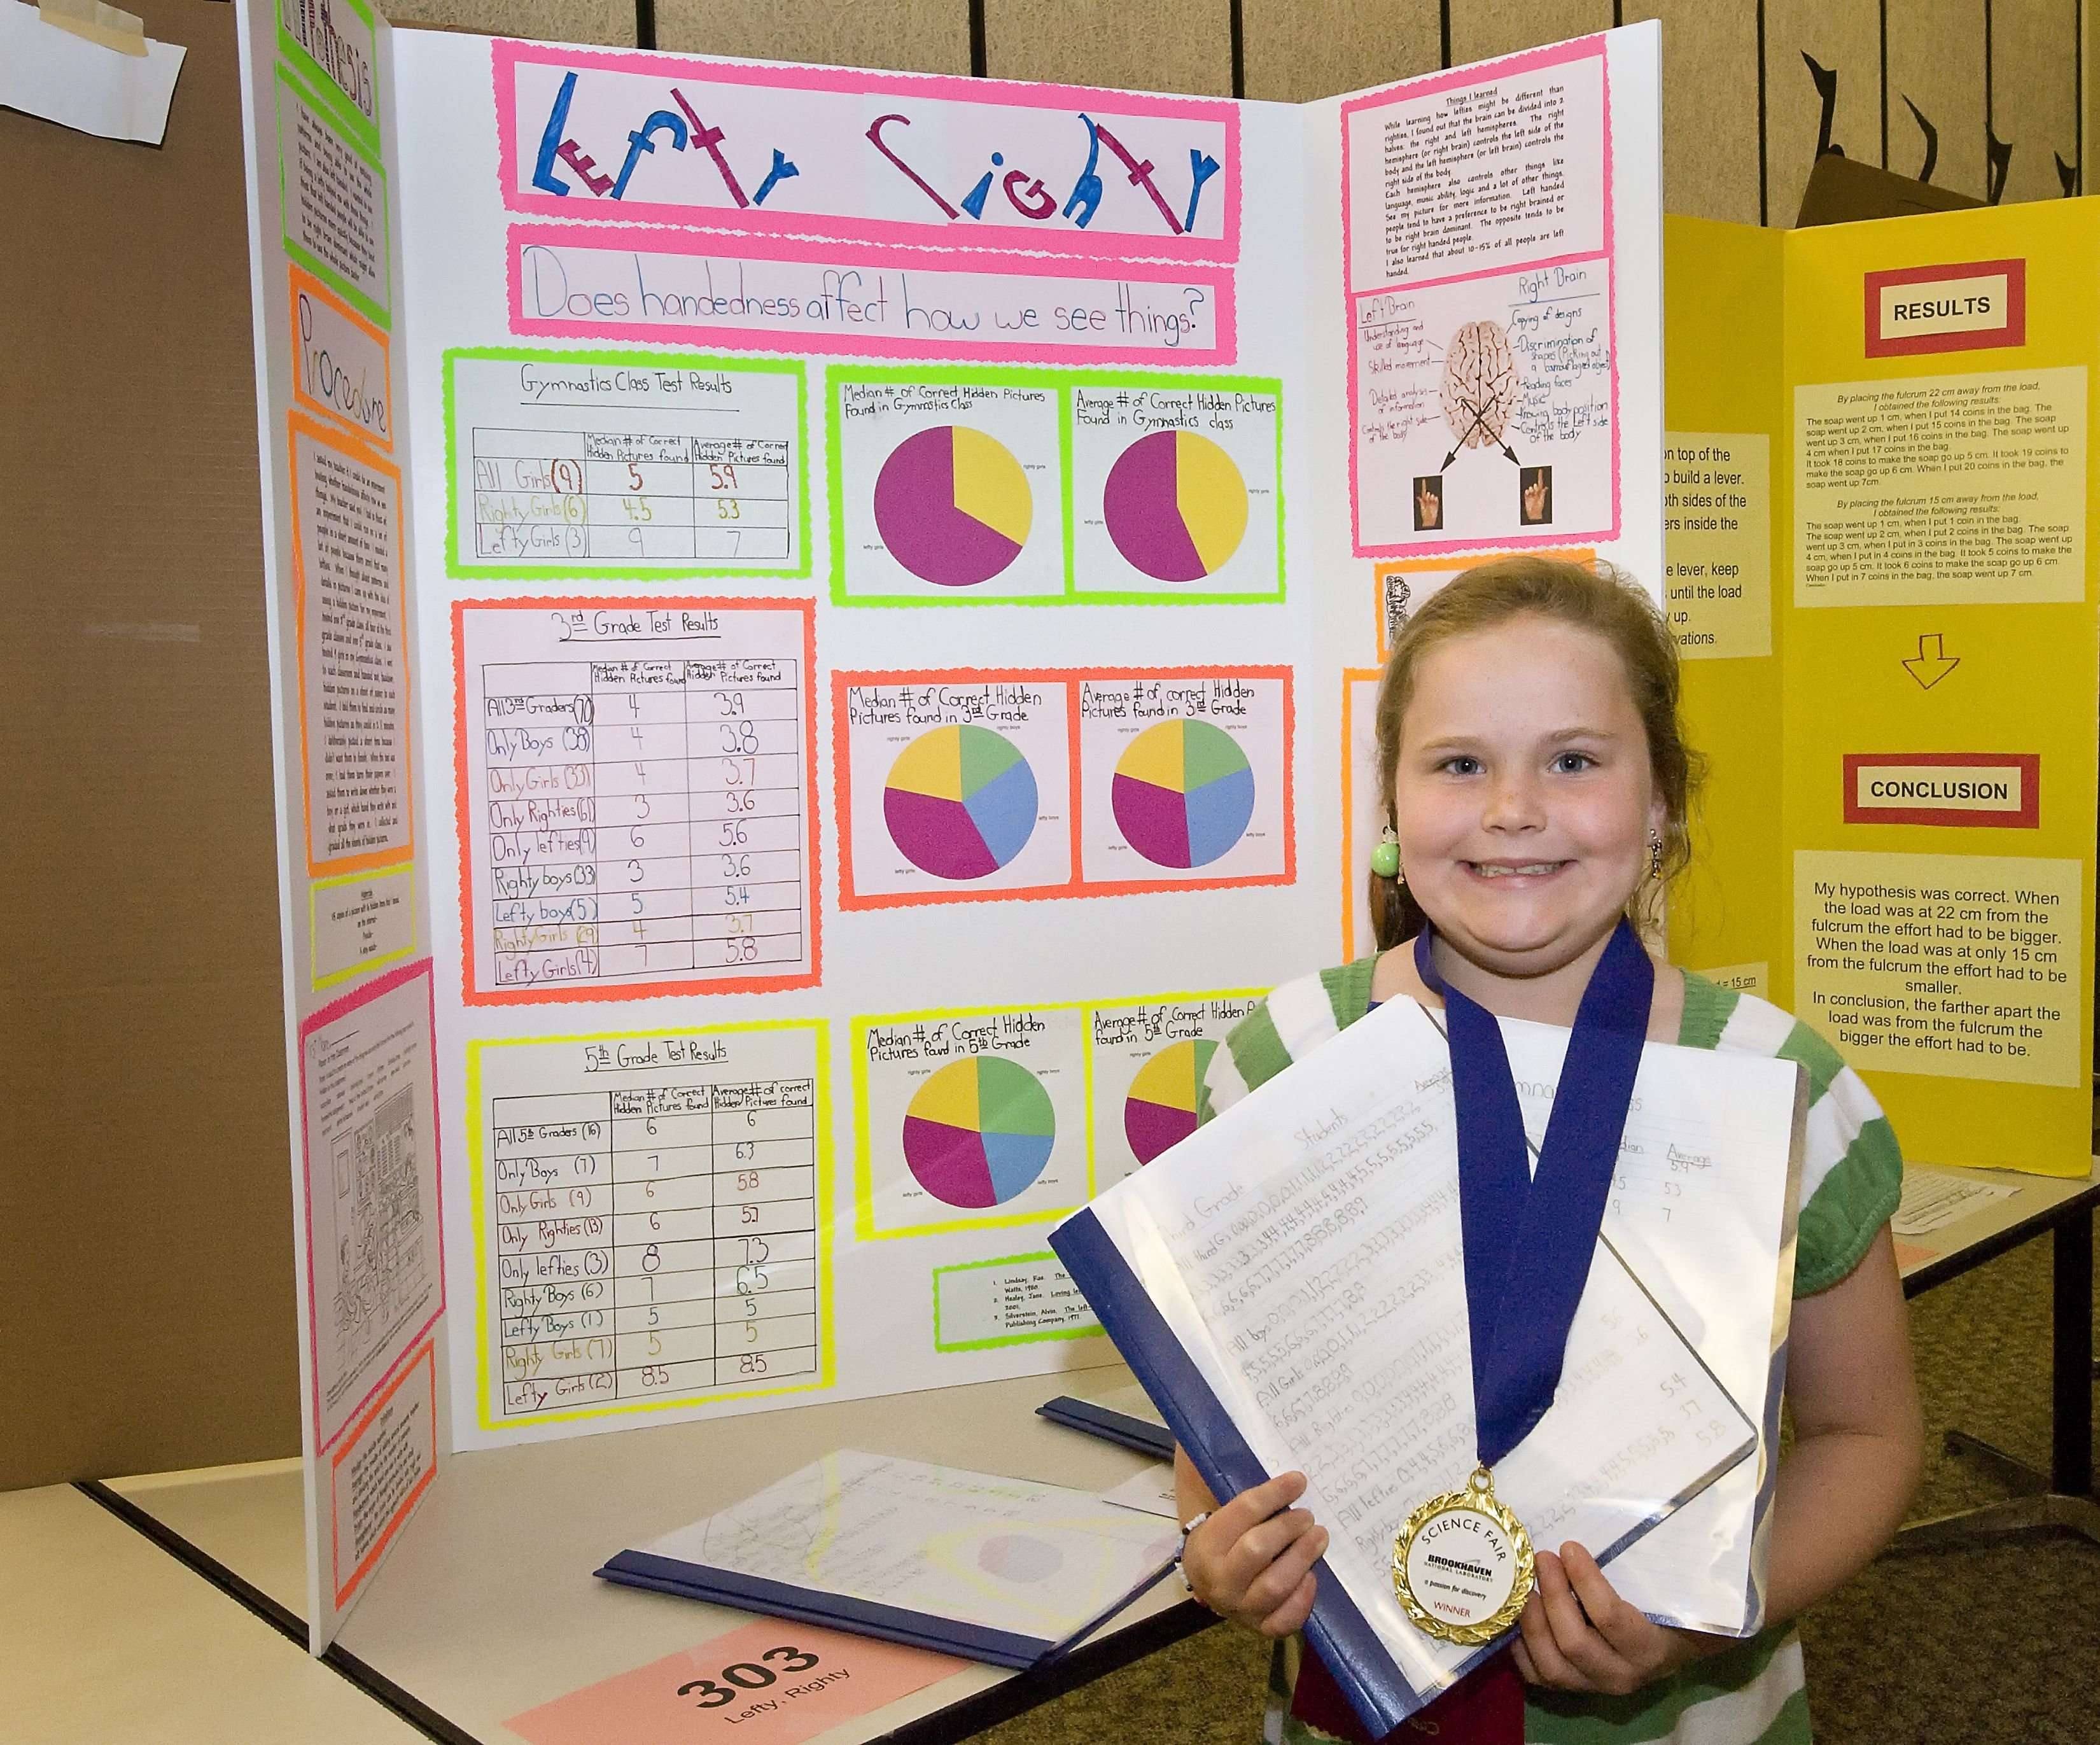 10 Attractive Third Grade Science Project Ideas 3rd grade science fair project ideas learning tools pinterest 5